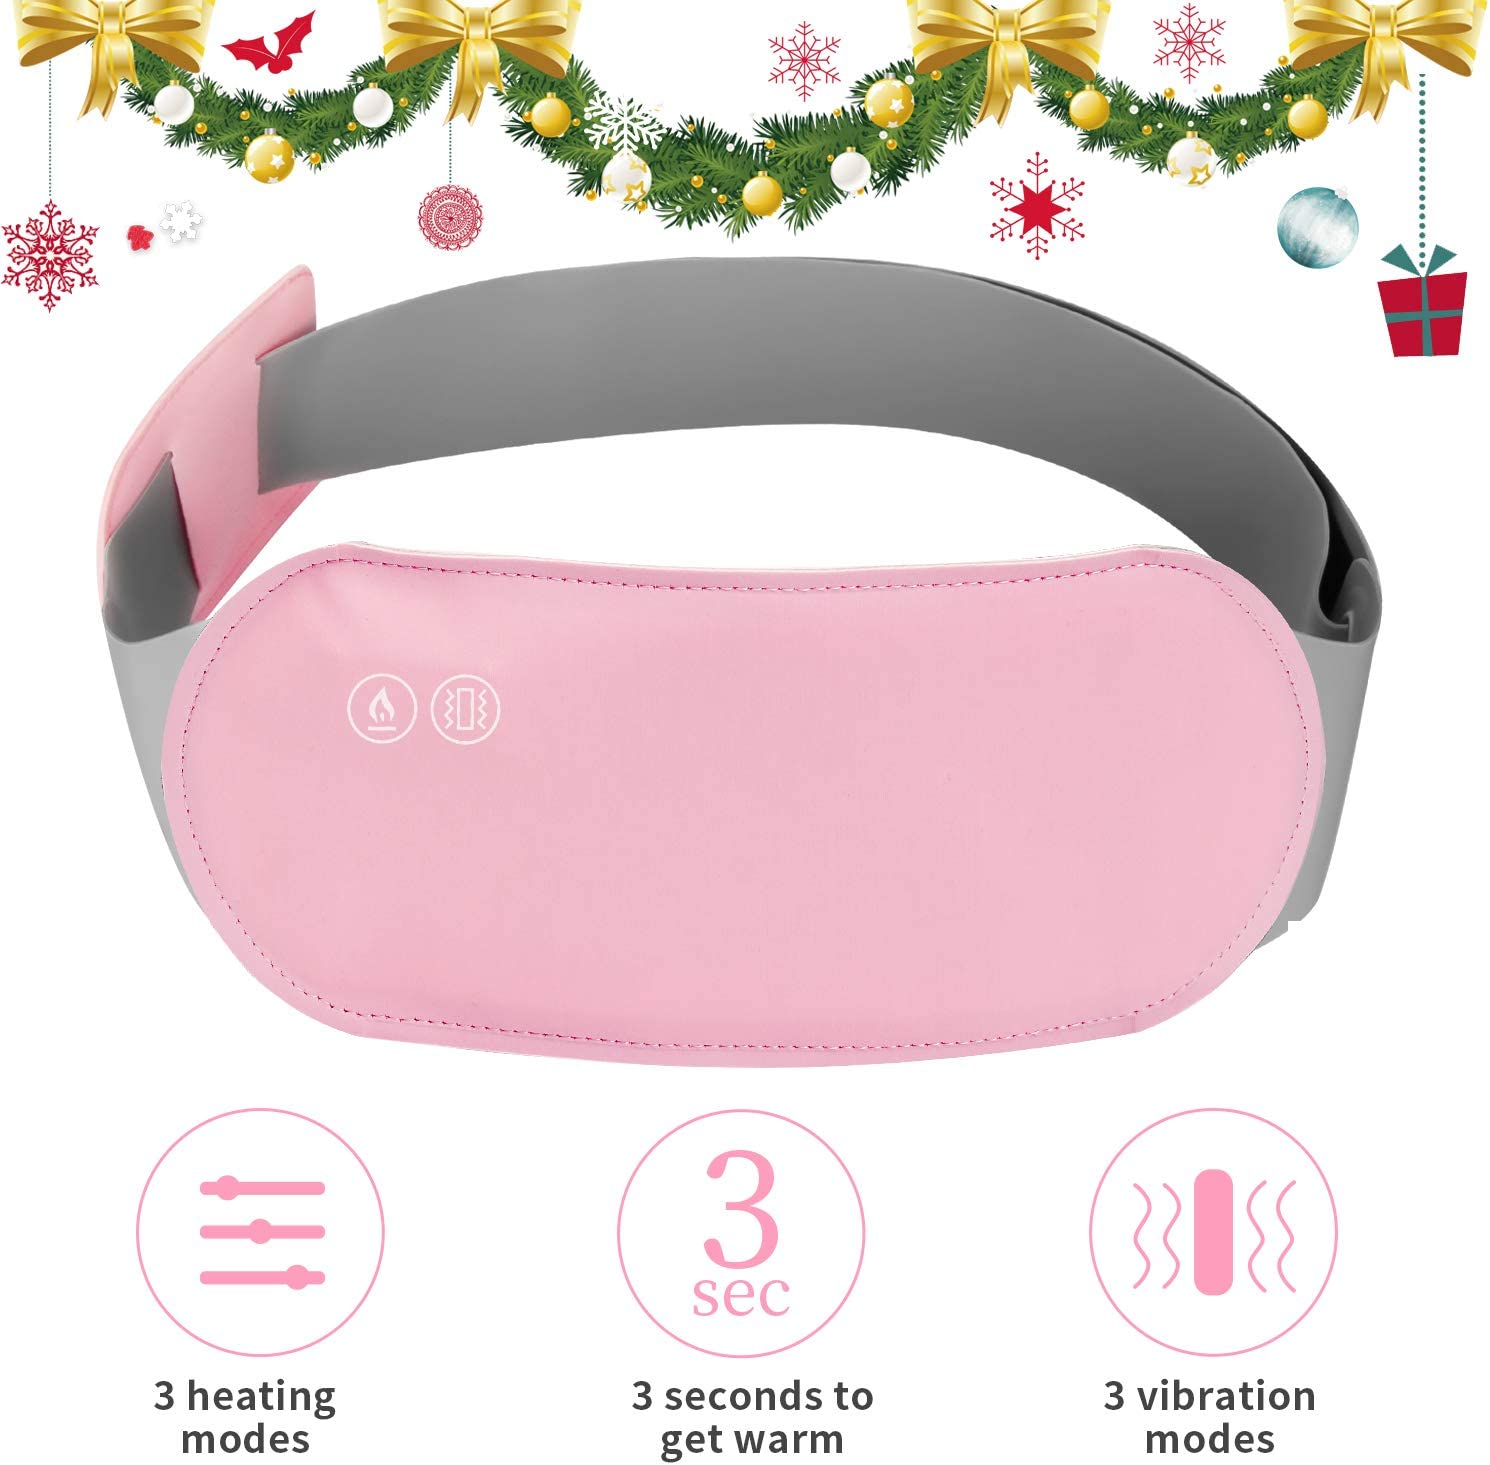 Portable Warm Palace Belt Heating Warming Waist Belt Warm Back Wrap USB Electric Heating Pad Belt Ladies for Stomache,Cramps,Dysmenorrhea,Pain Relief (Not Store Electricity, Heating & Vibration)